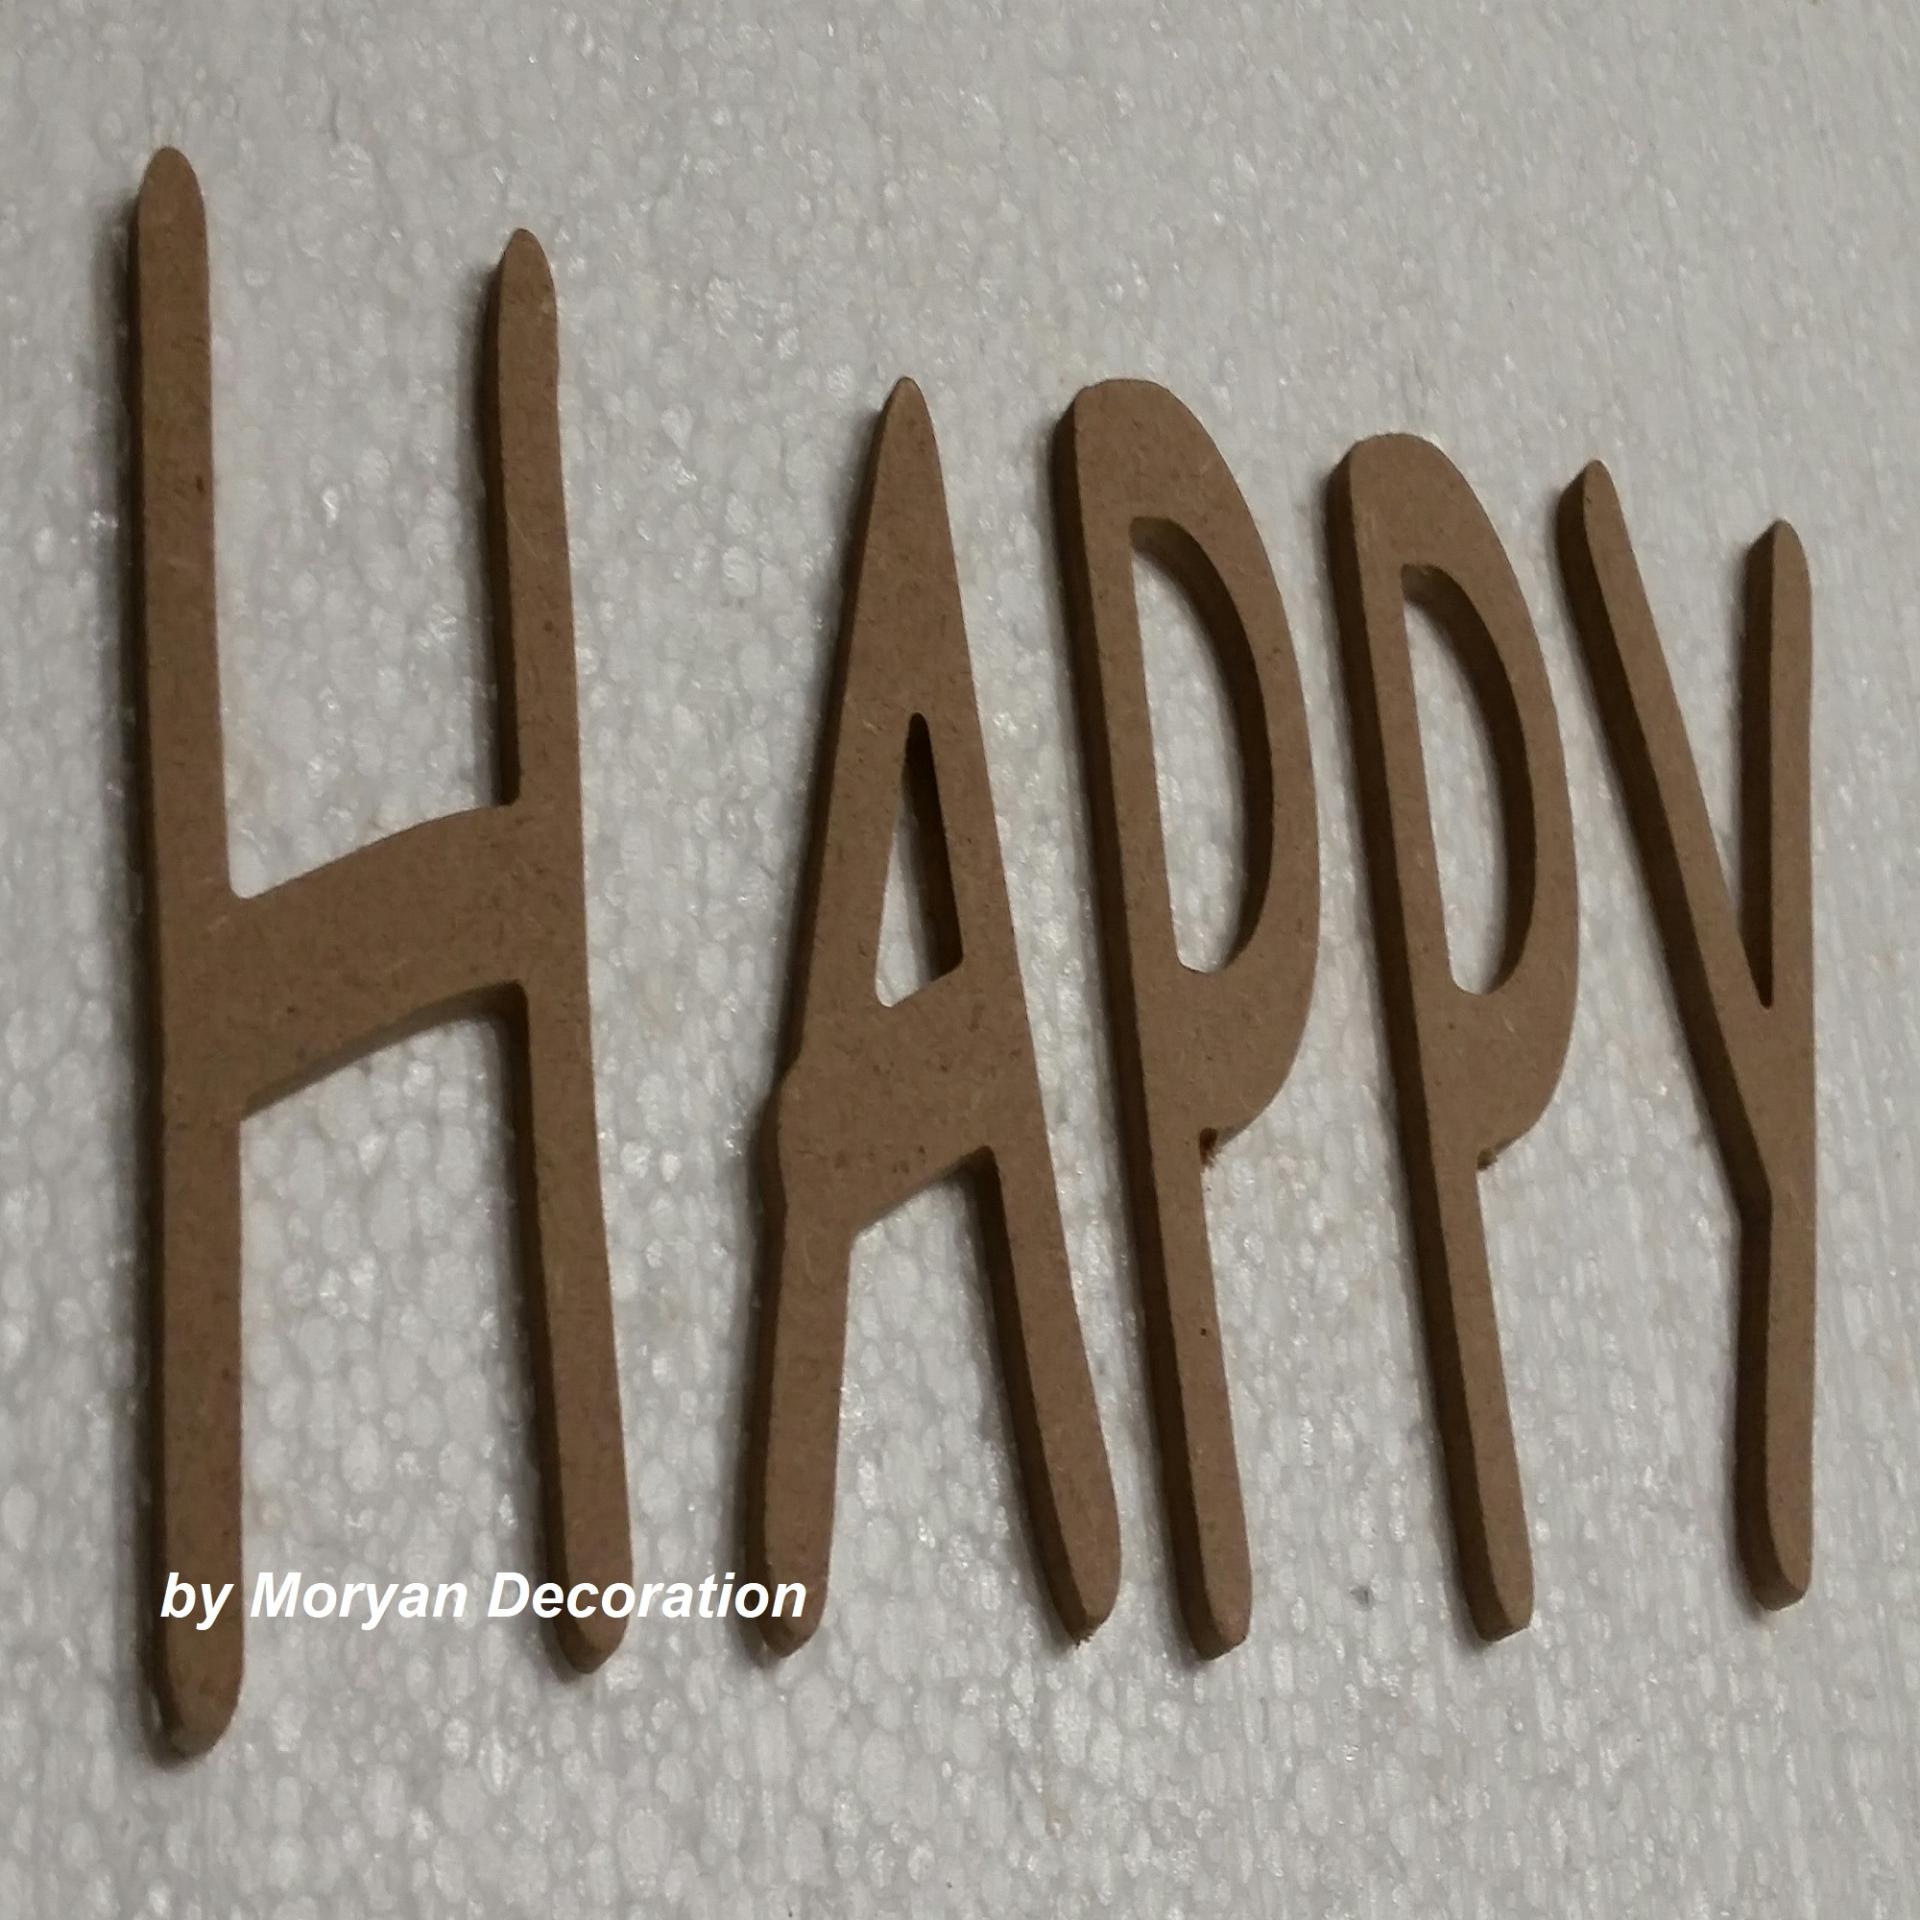 Lettres decoratives en bois a peindre ou a decorer happy